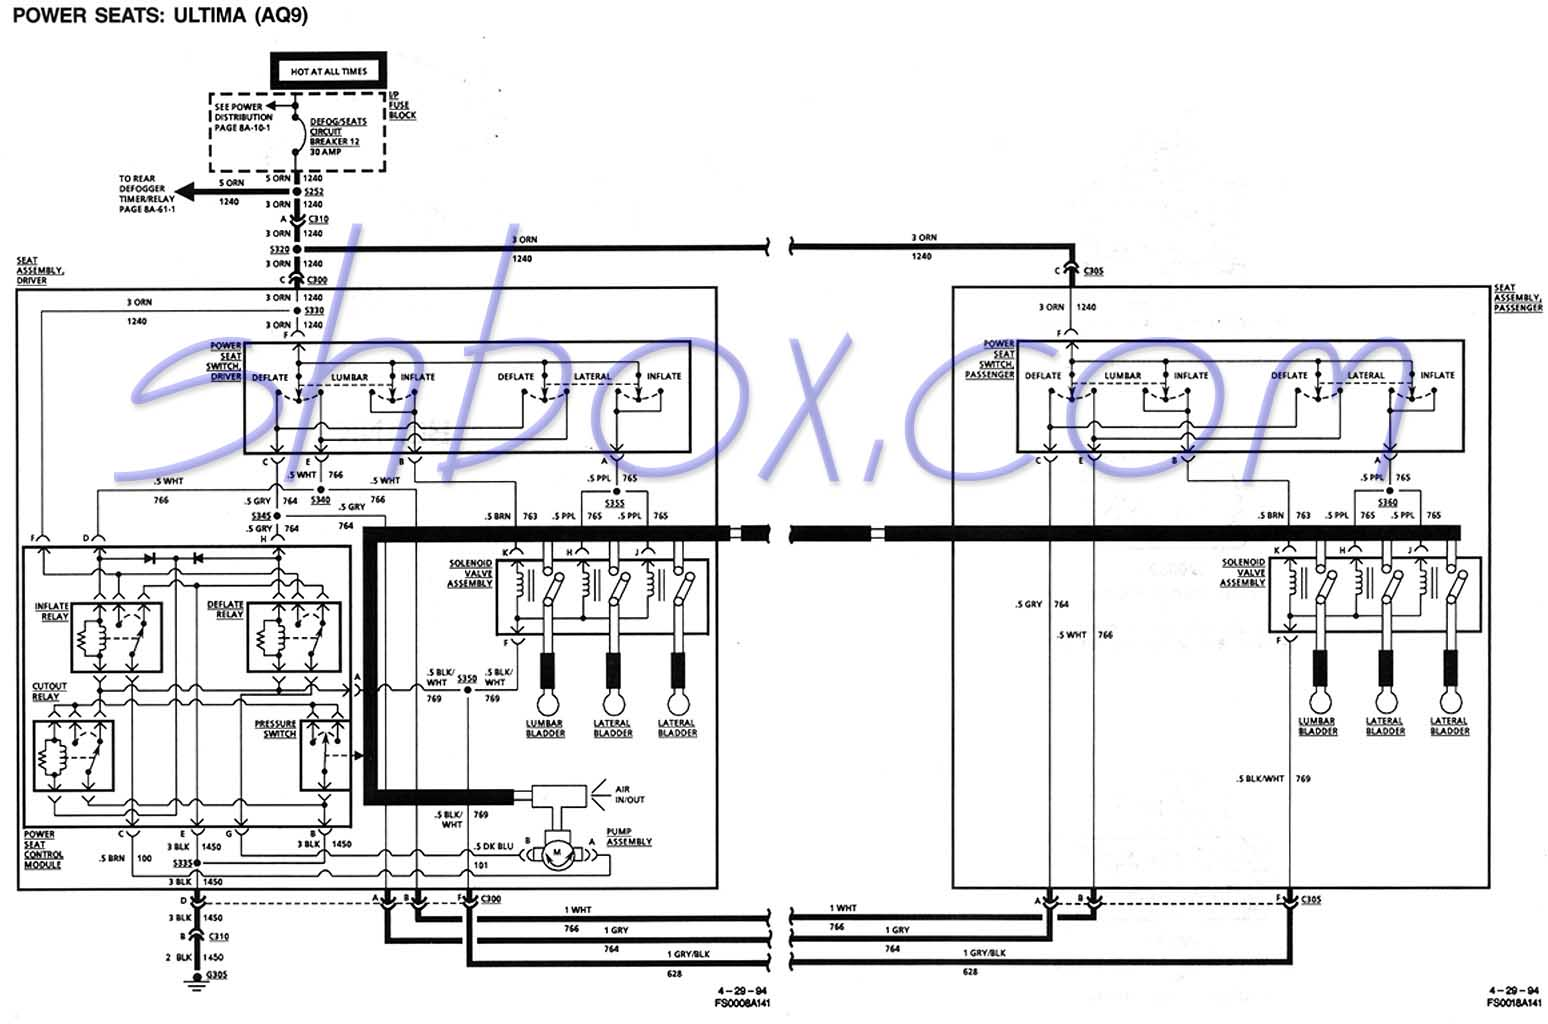 1992 honda prelude speaker wiring diagram 6 to 12 volt conversion 99 isuzu rodeo imageresizertool com